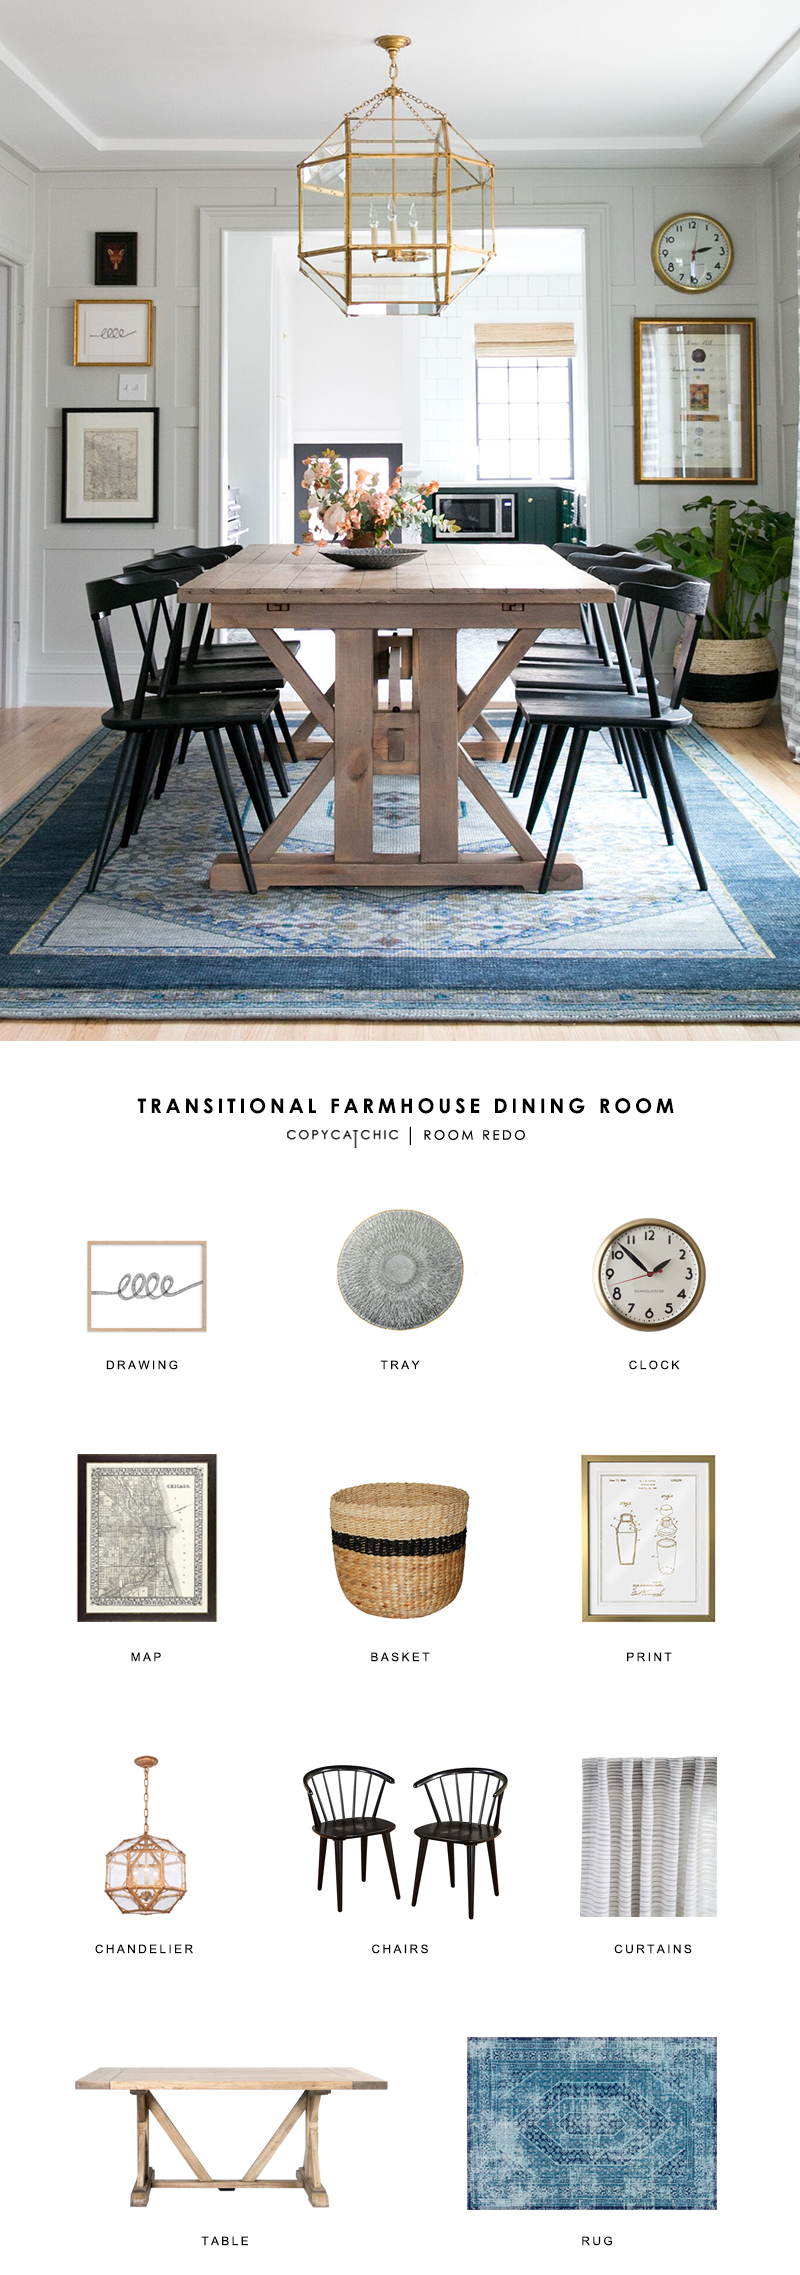 Room Redo Transitional Farmhouse Dining Room Copycatchic